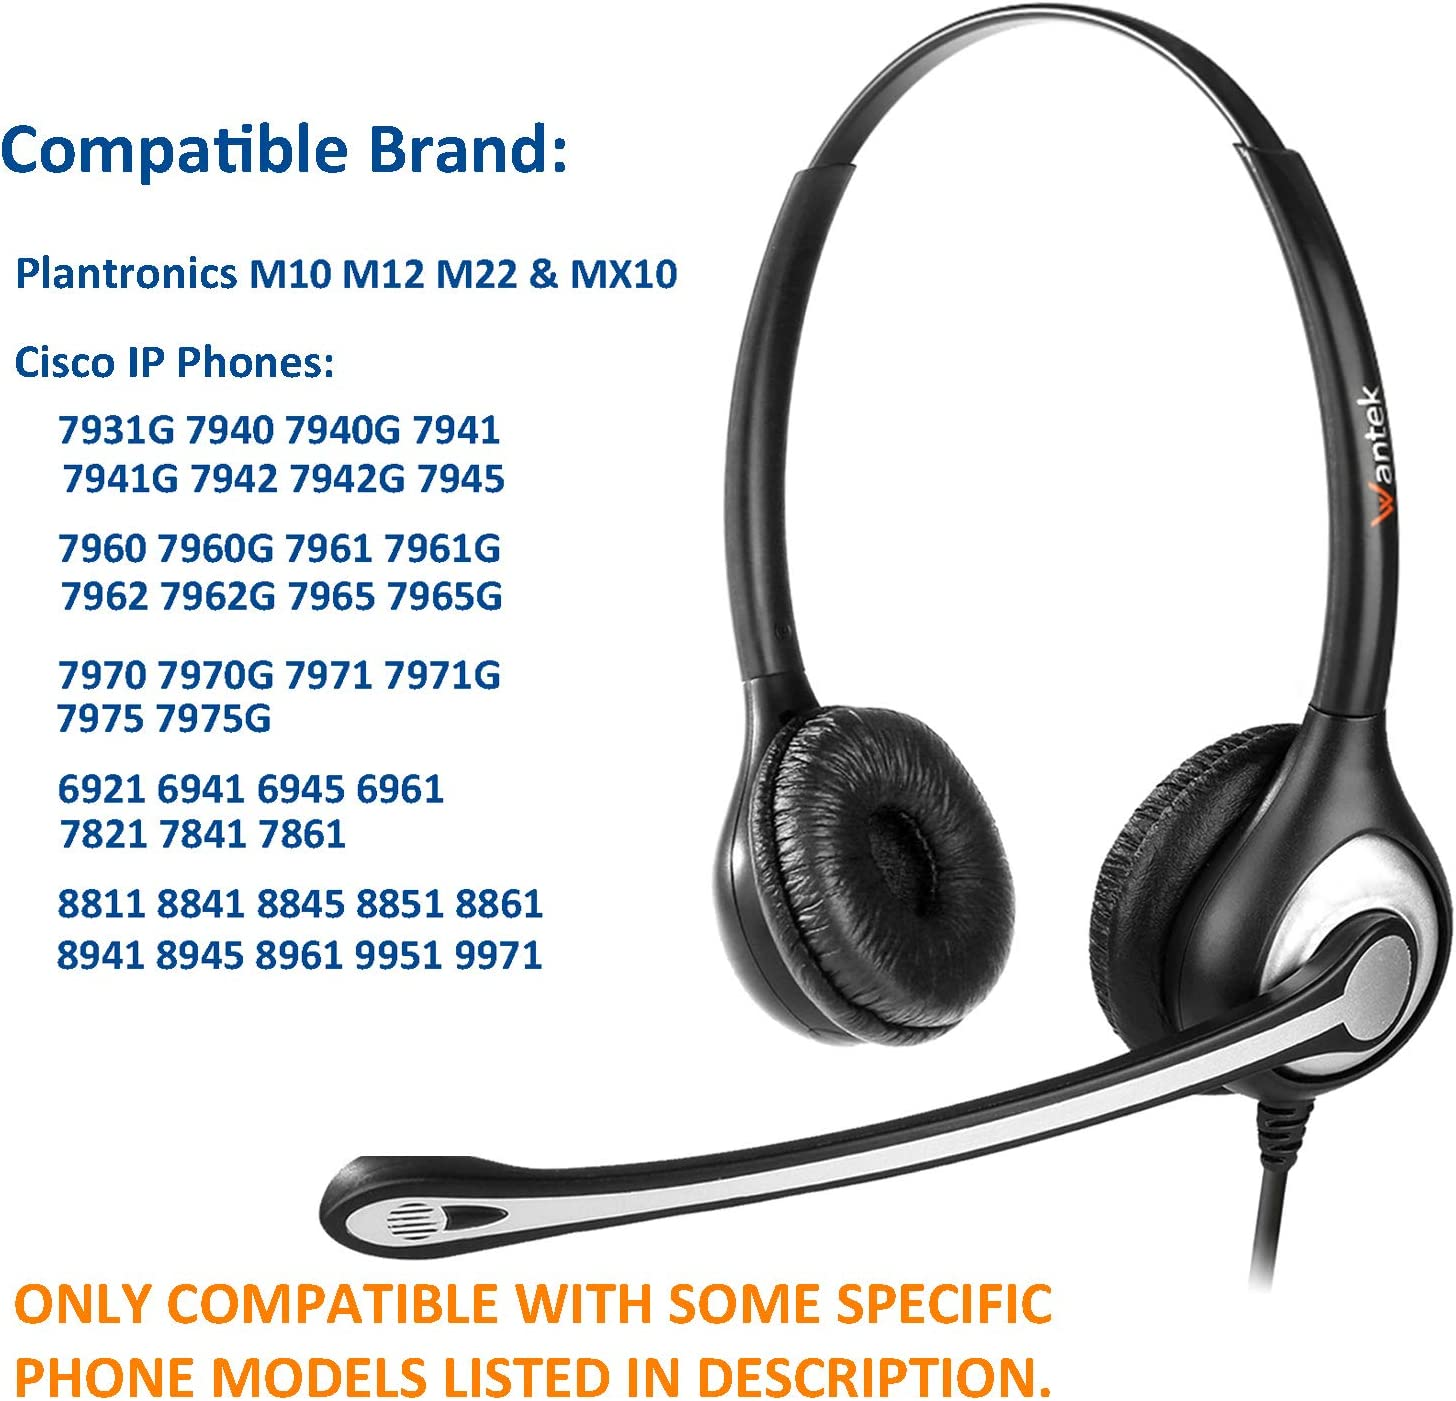 7945G 7962G 7941G 8841 7960 7965 etc 7940 7841 7931G 7942G 7961G Cisco IP Phone Compatible Headset with Noise Cancelling Microphone RJ9 Corded Phone Headset for Cisco CP-7821 7961